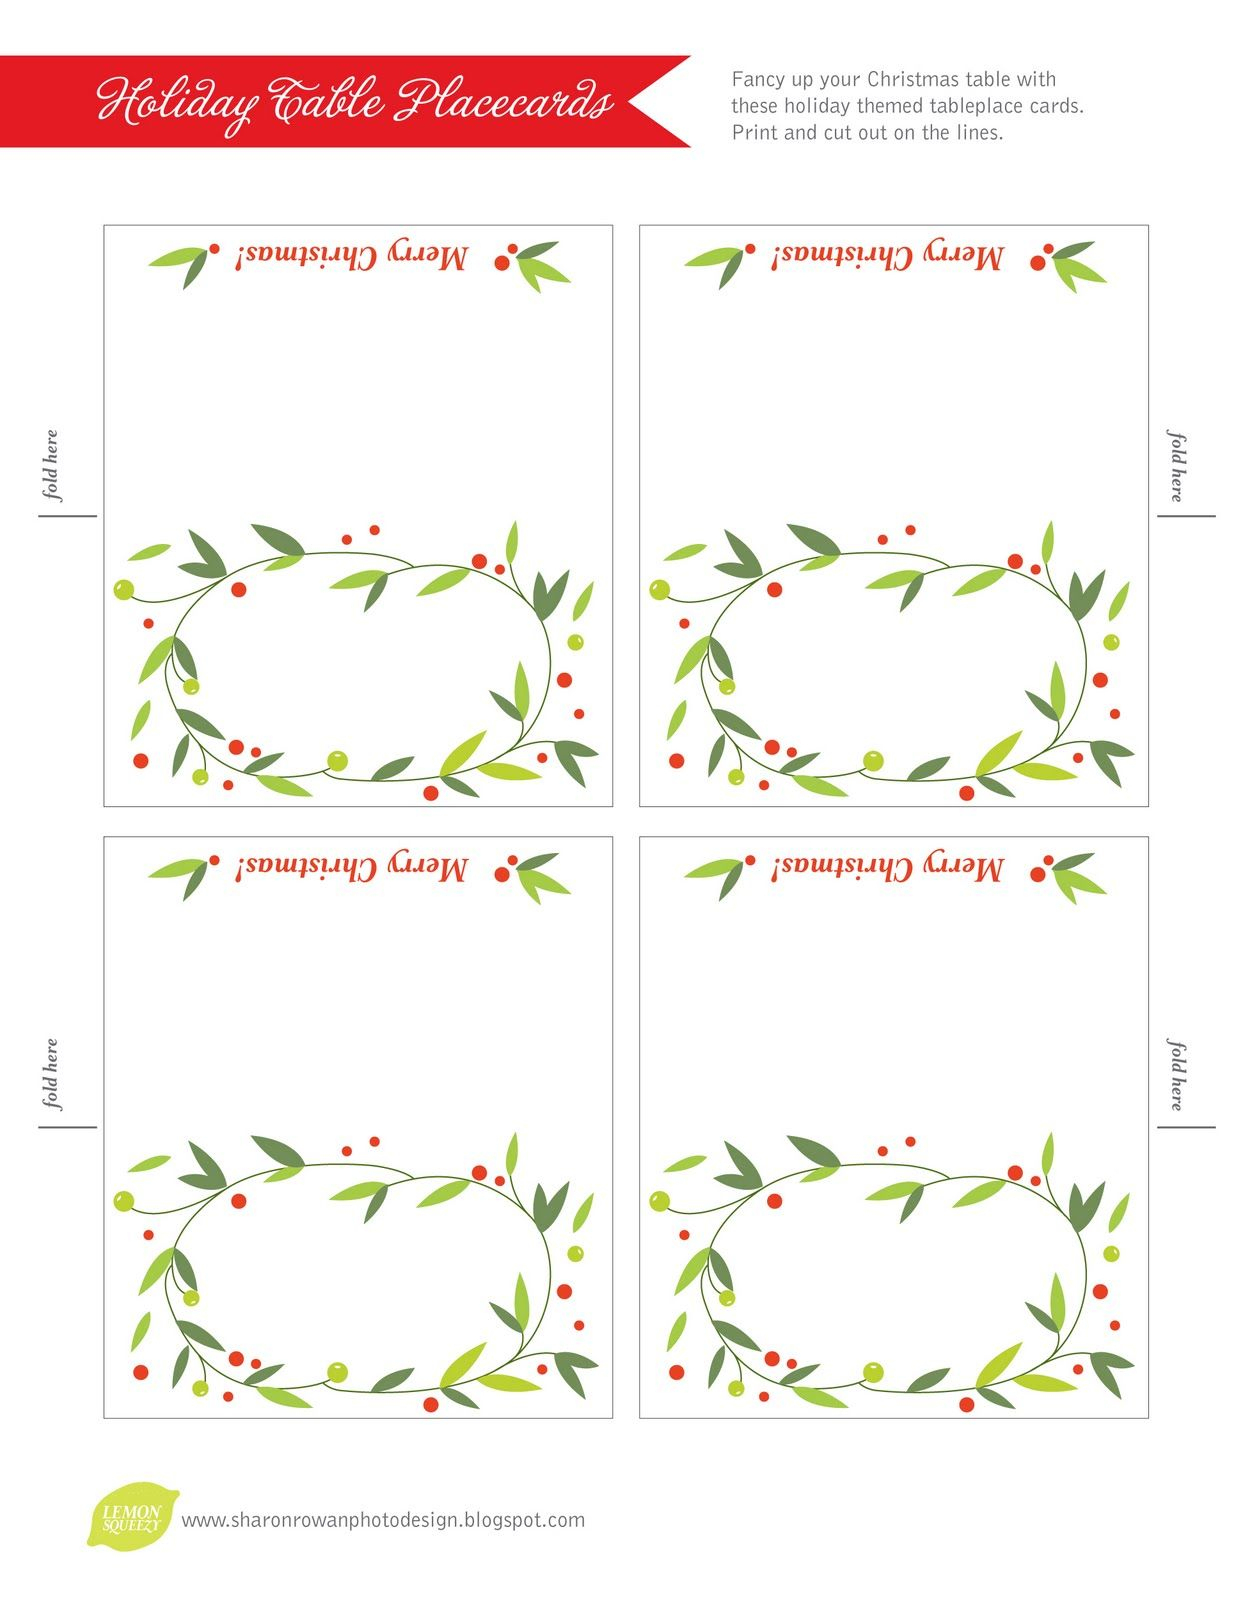 Pinkay Kostrencich On Event Ideas   Pinterest   Christmas Place - Christmas Table Name Cards Free Printable